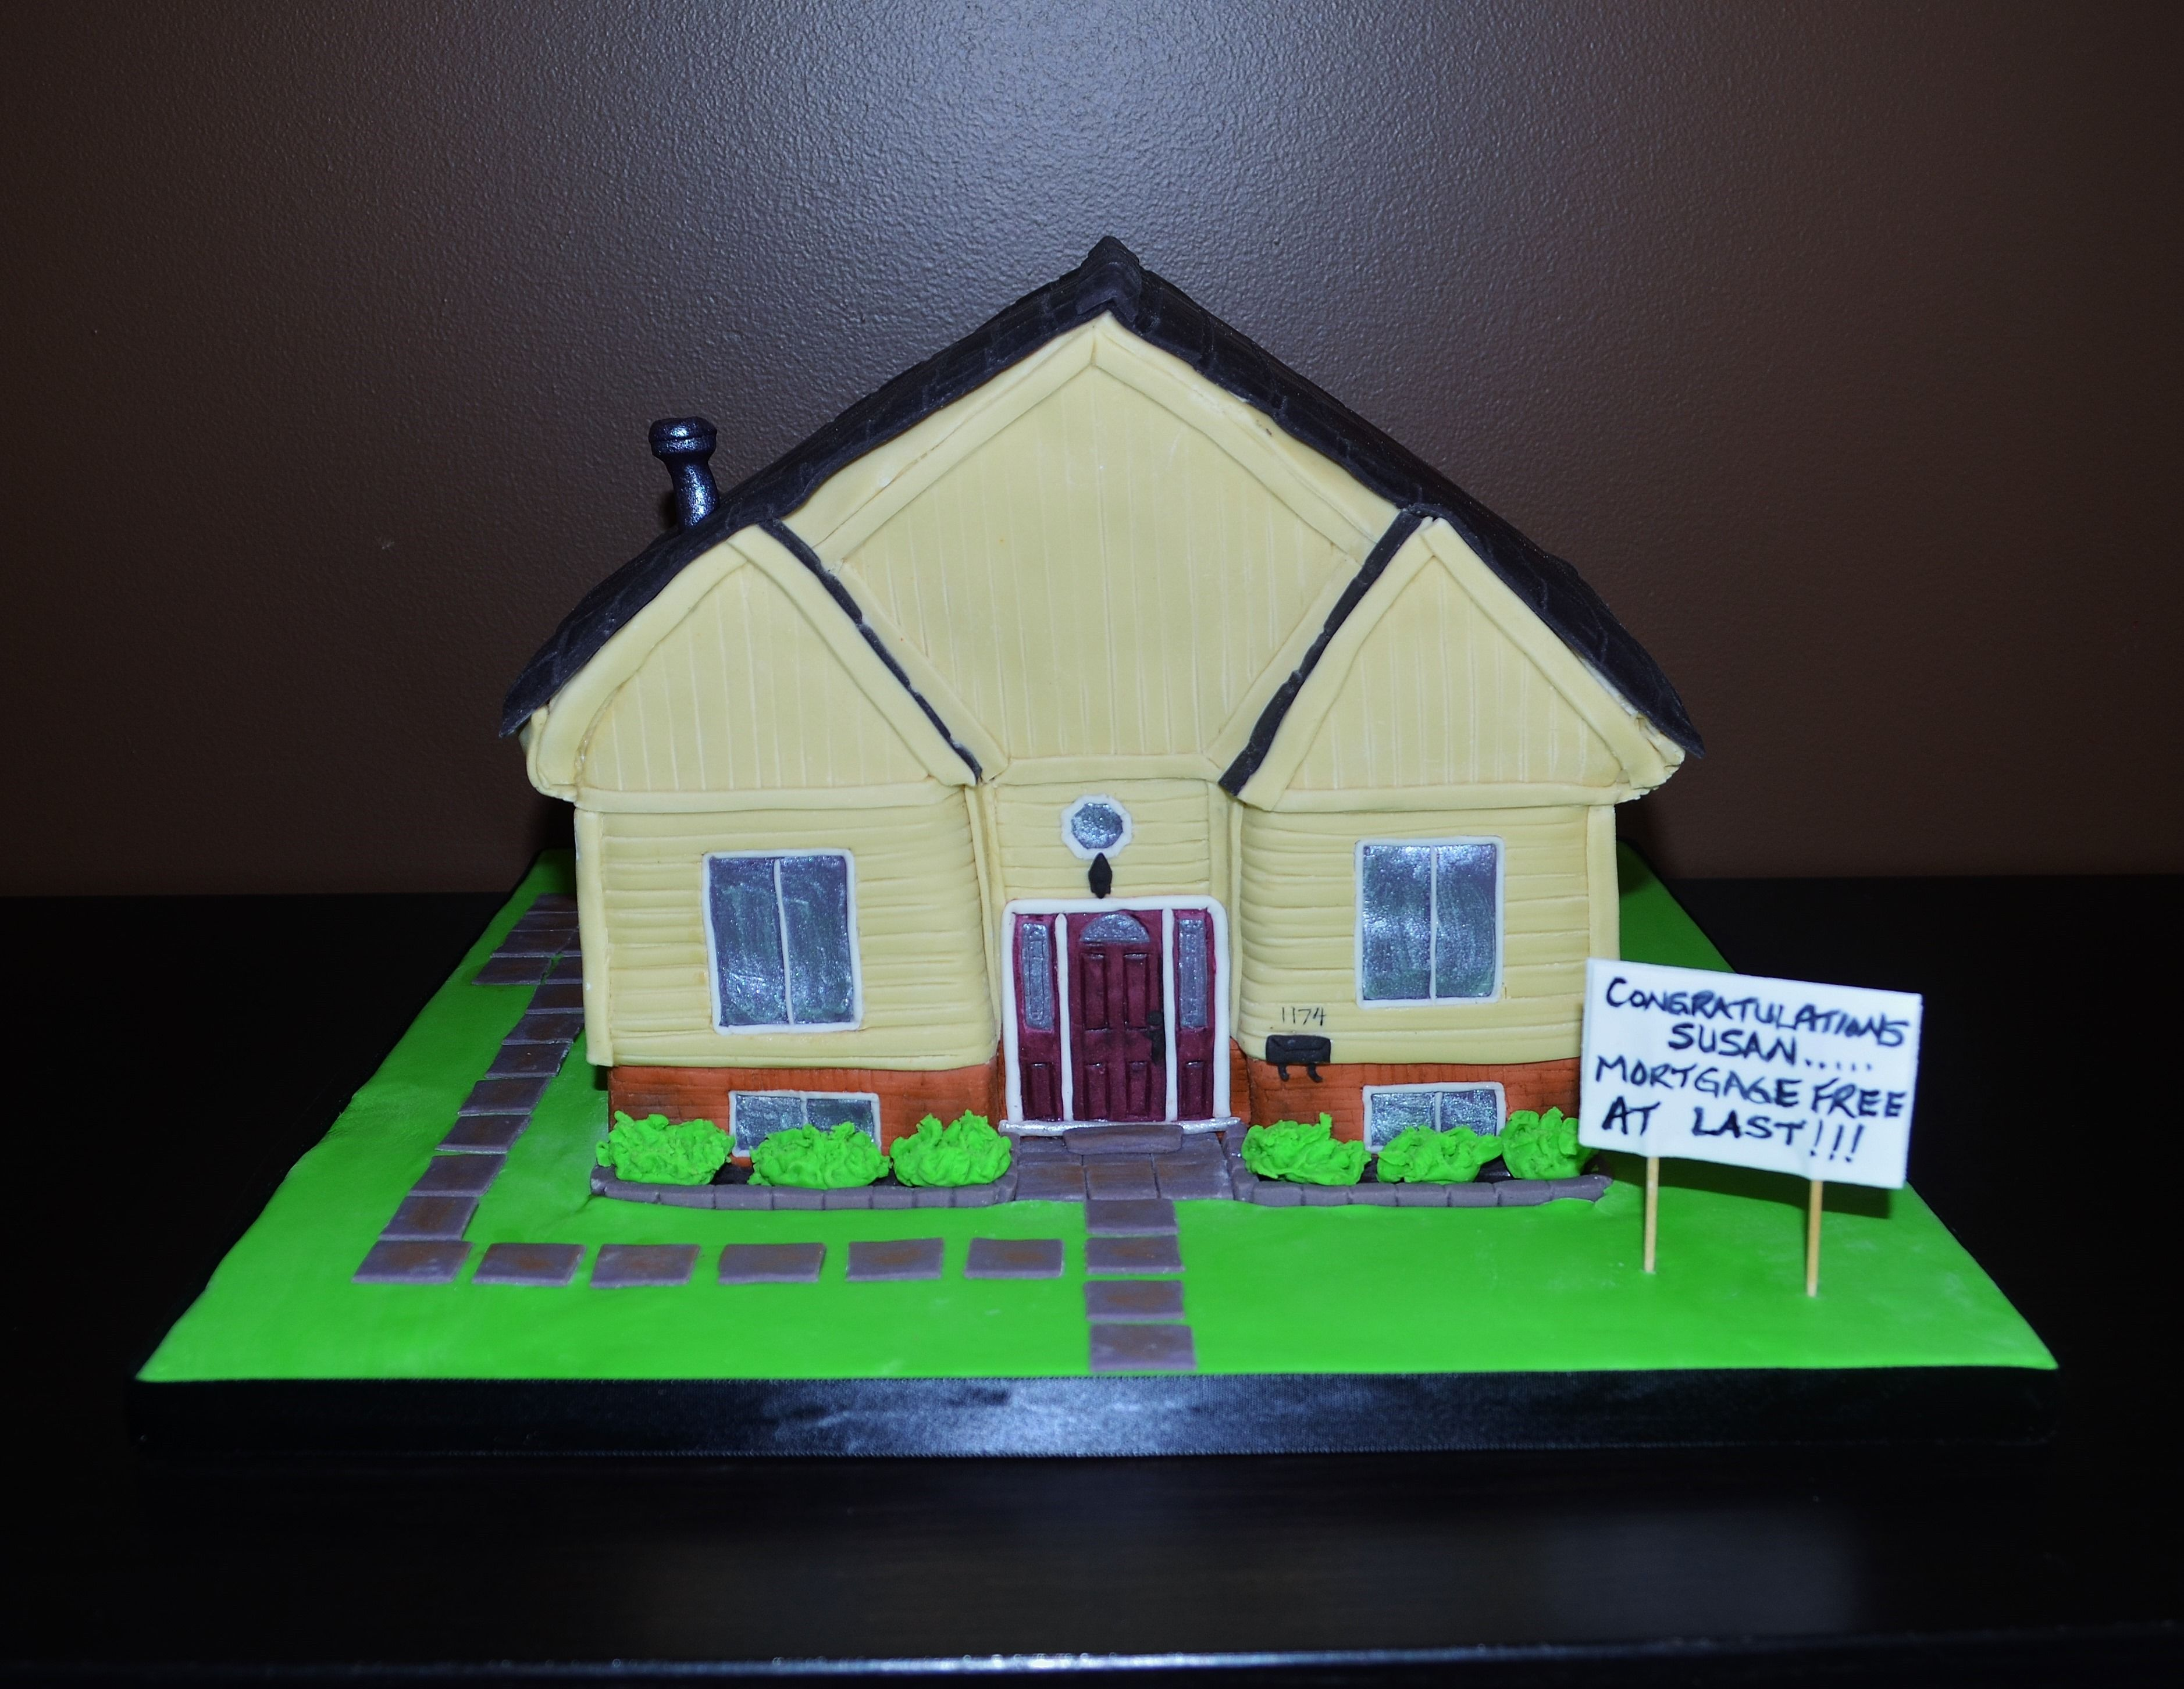 House Cake A Replica House To Celebrate Being Mortgage Free House Cake Sculpted Cakes Rubiks Cube